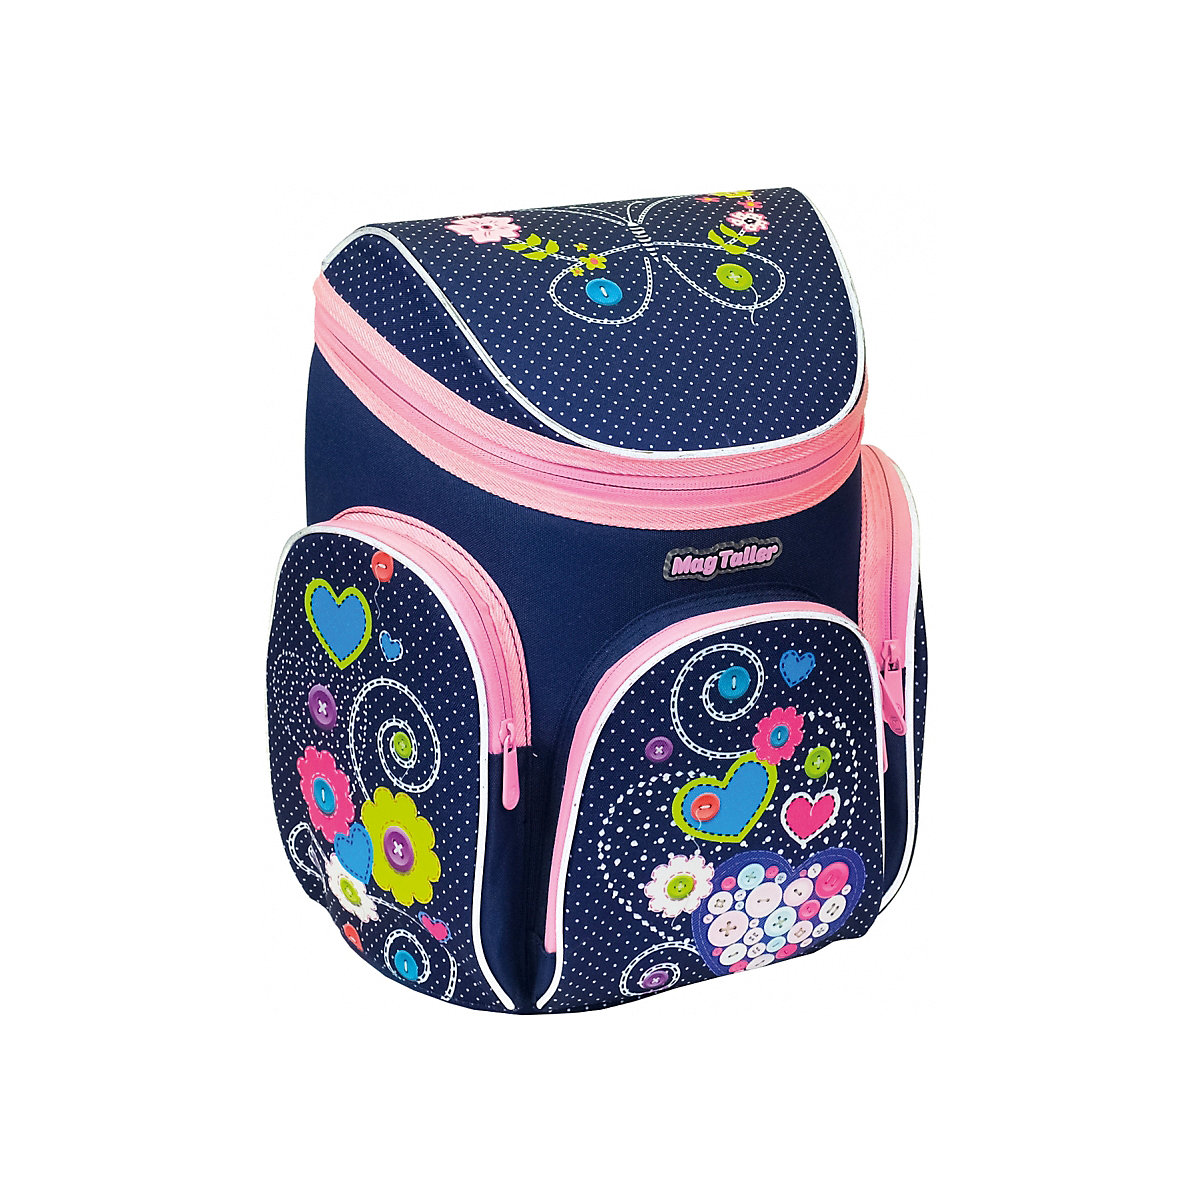 School Bags MAGTALLER 8316016 schoolbag backpack orthopedic bag for boy and girl animals flowers outdoor tactical multi function oxford cloth water bag storage bag backpack camouflage